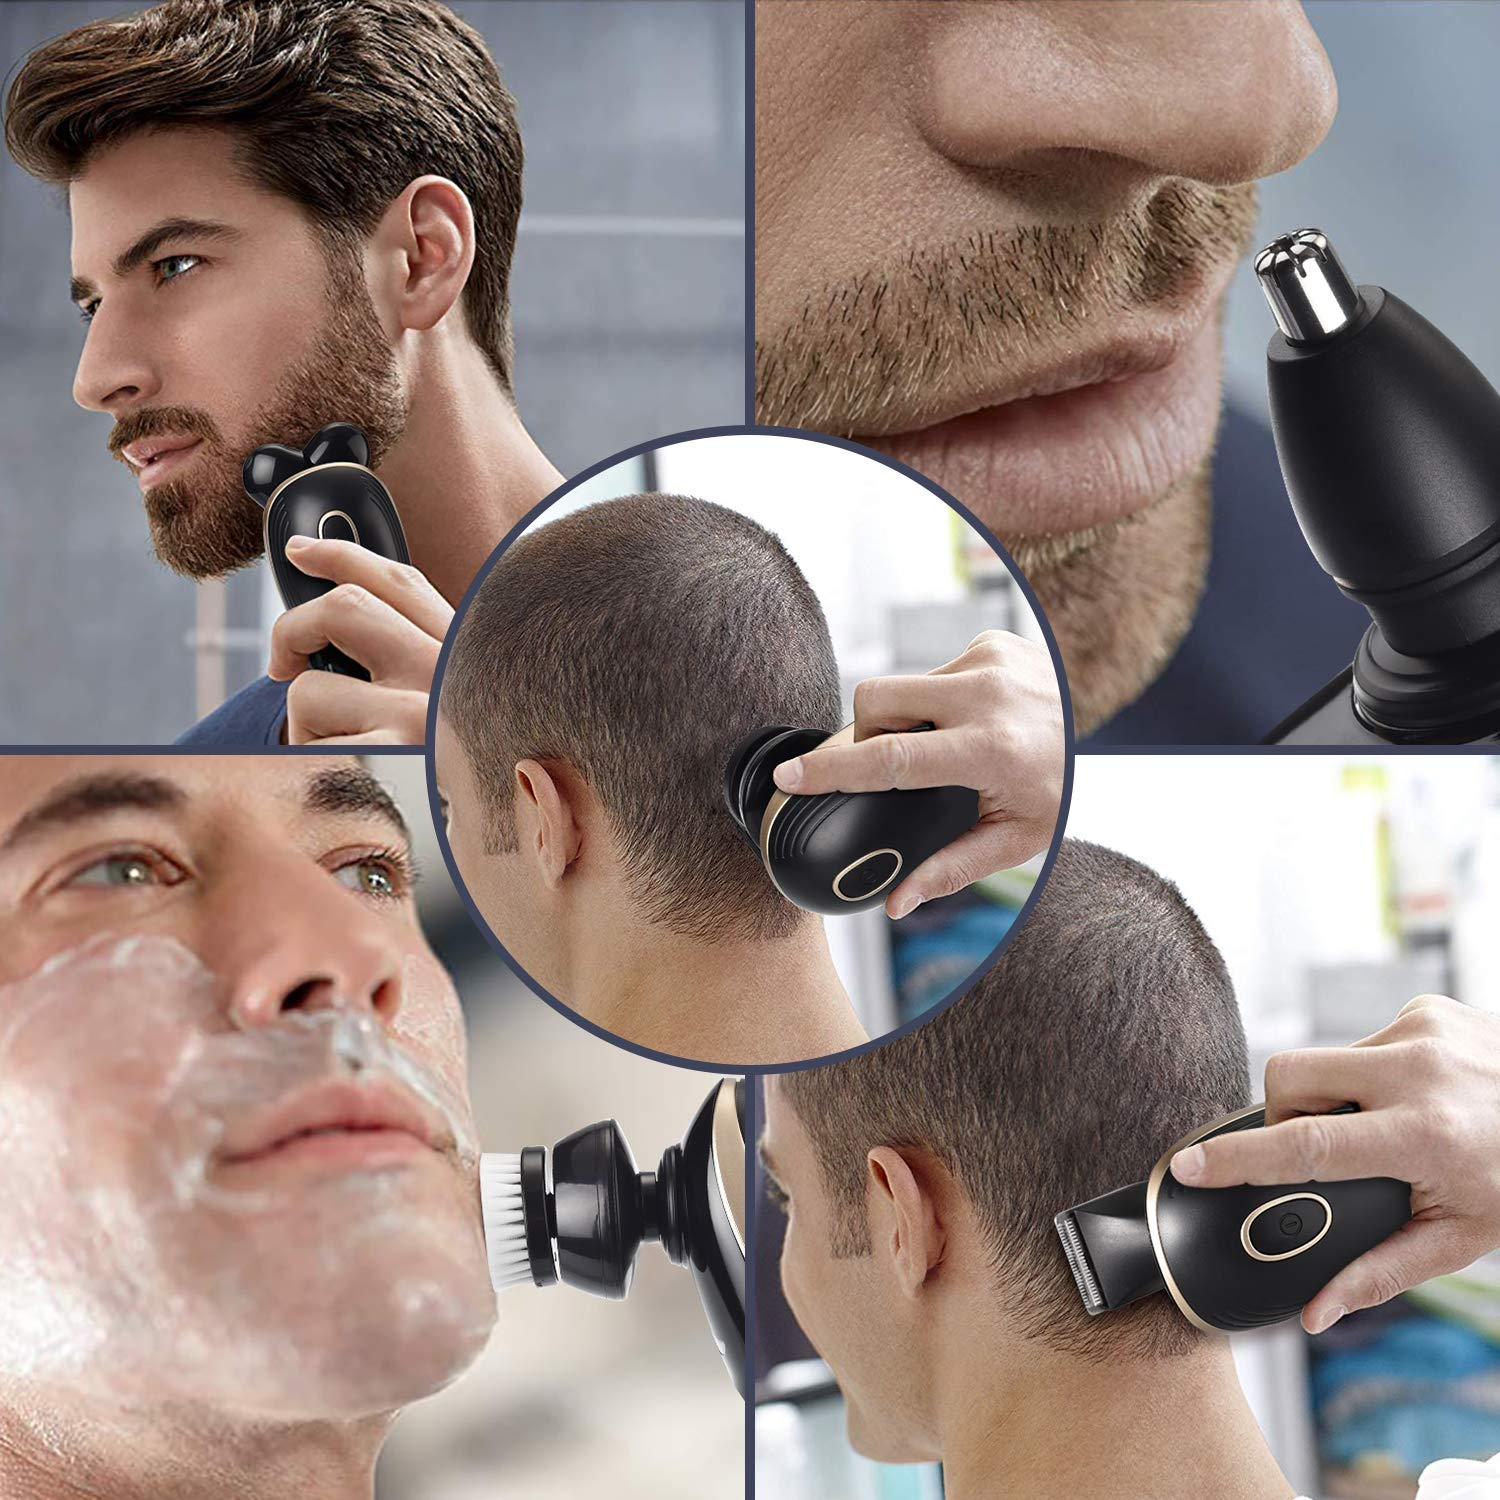 Men\'s 5-in-1 Electric Shaver & Grooming Kit Men Rotary Shaver Beard Trimmer with Five-Headed Beard, Hair Razor for a Perfect Bald Look, Rechargeable Cordless Wet Dry